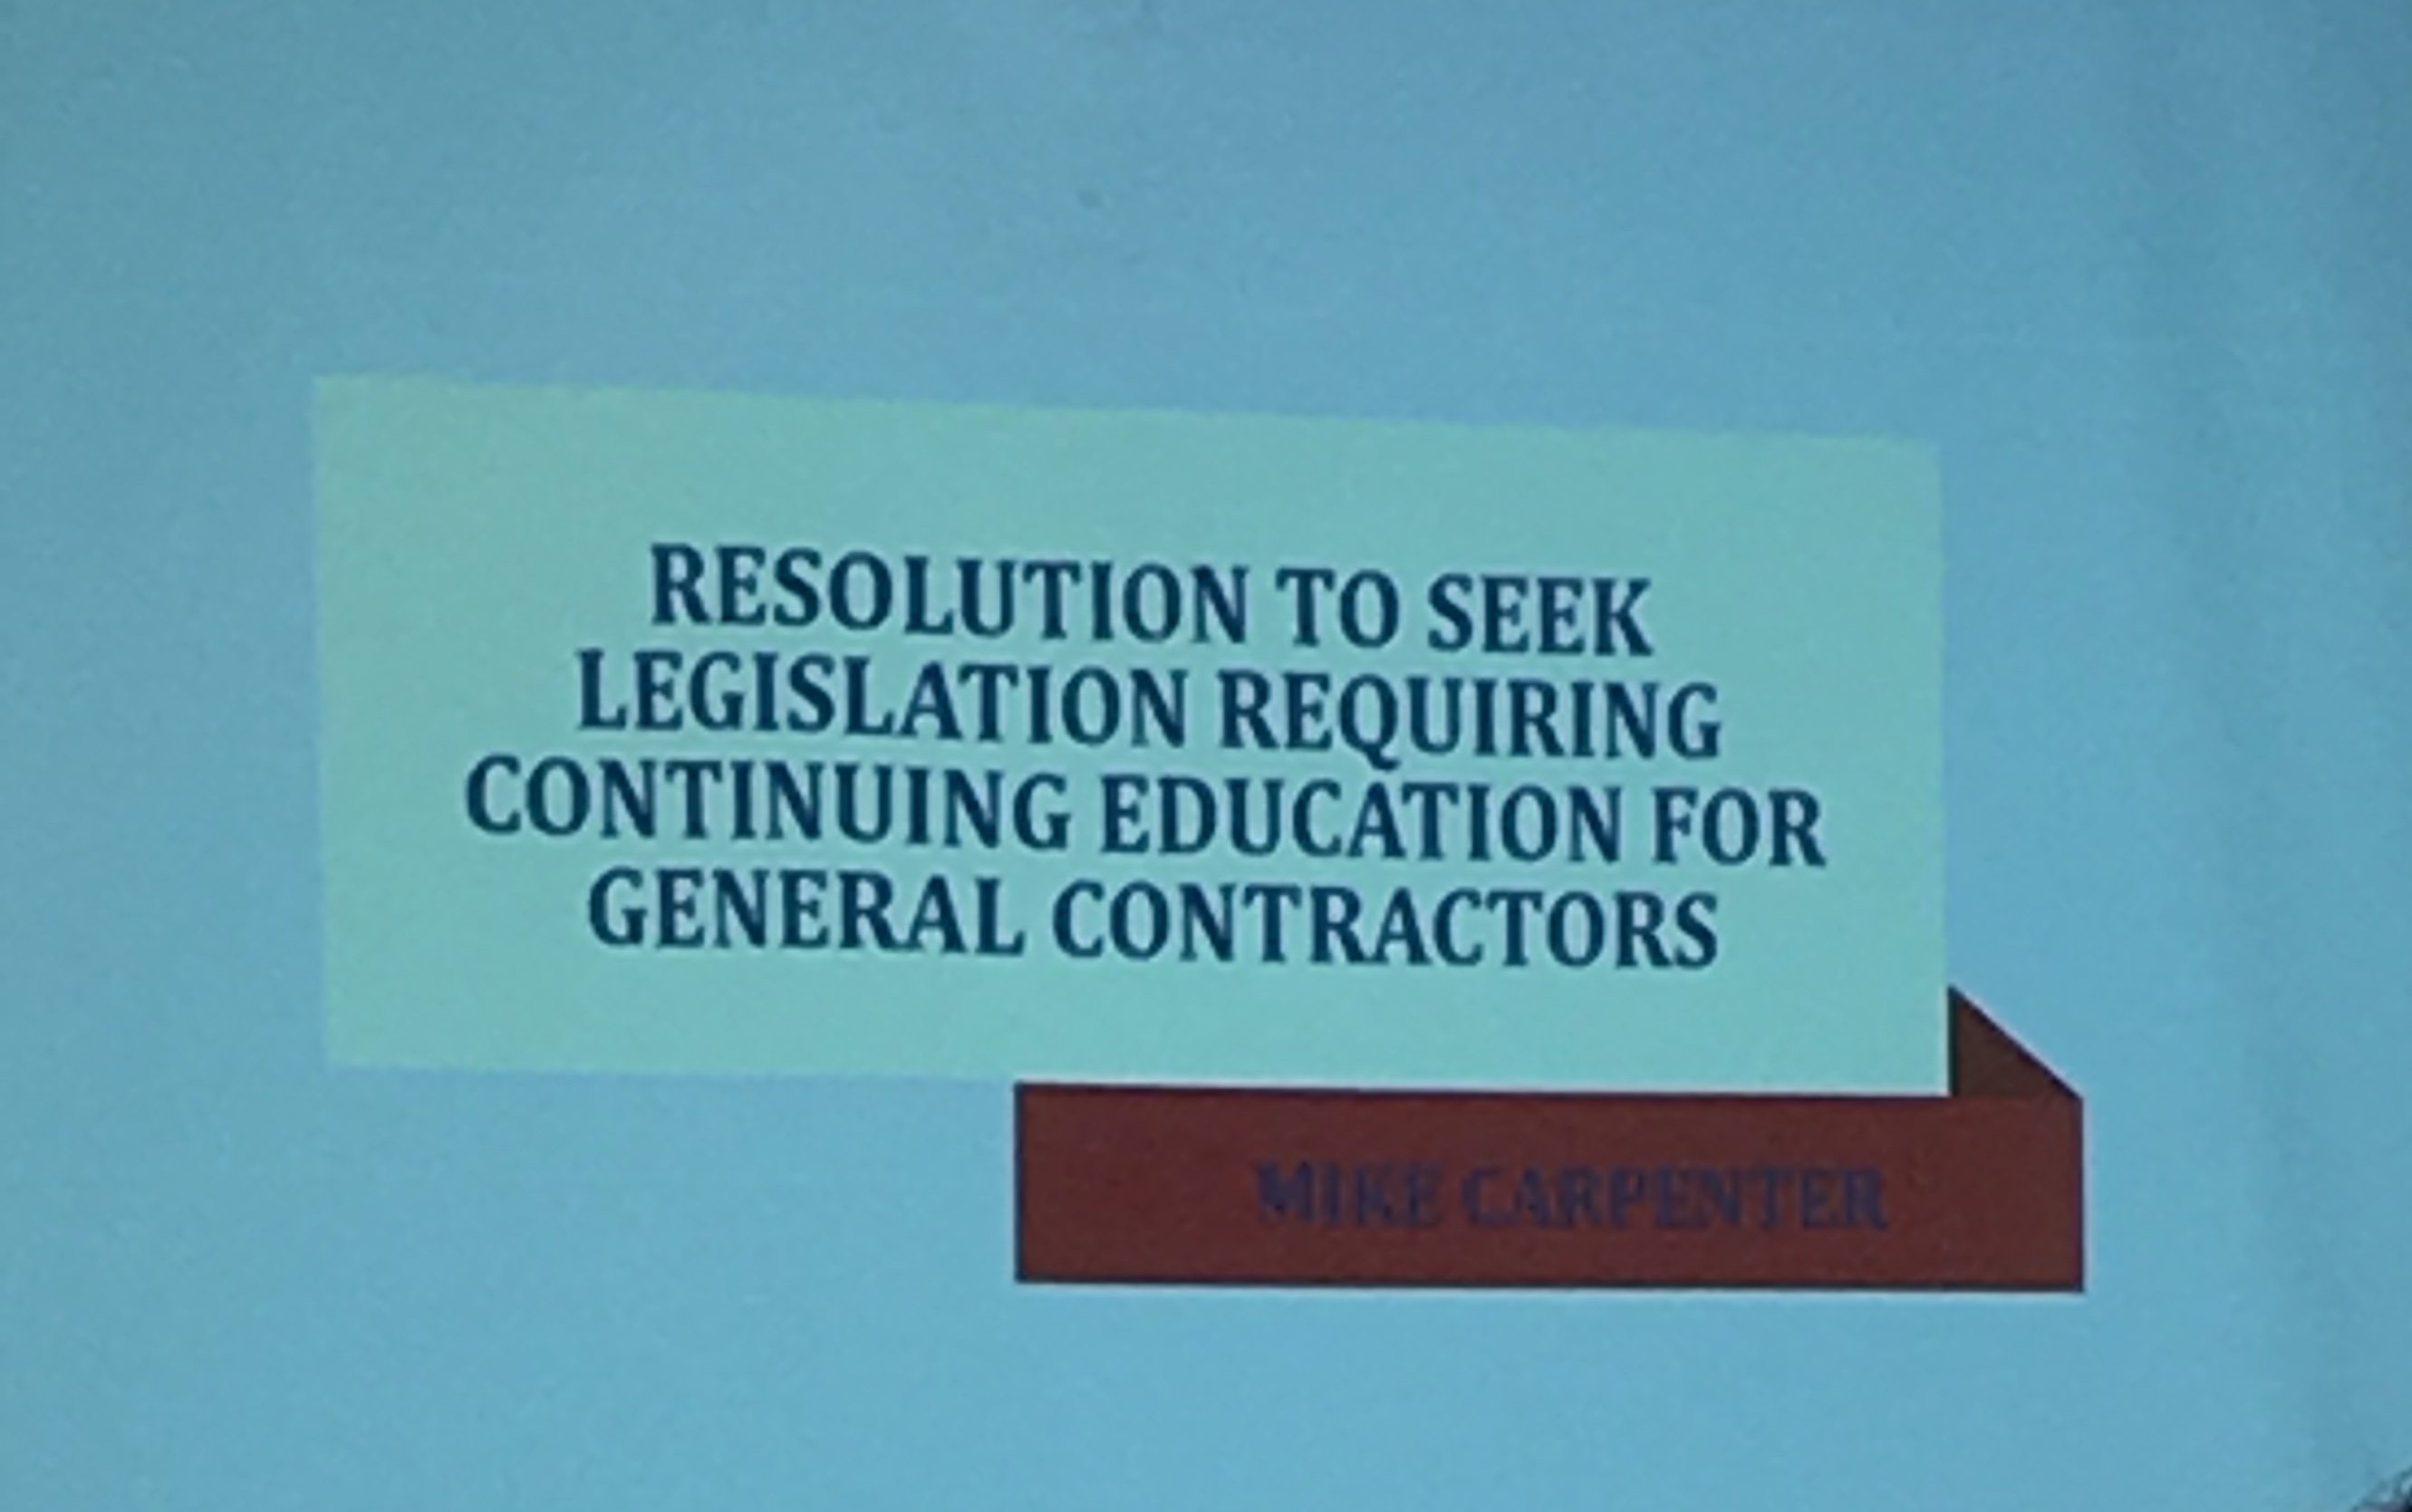 NCHBA Board Votes To Seek Legislation Requiring Mandatory Continuing Education For General Contractors